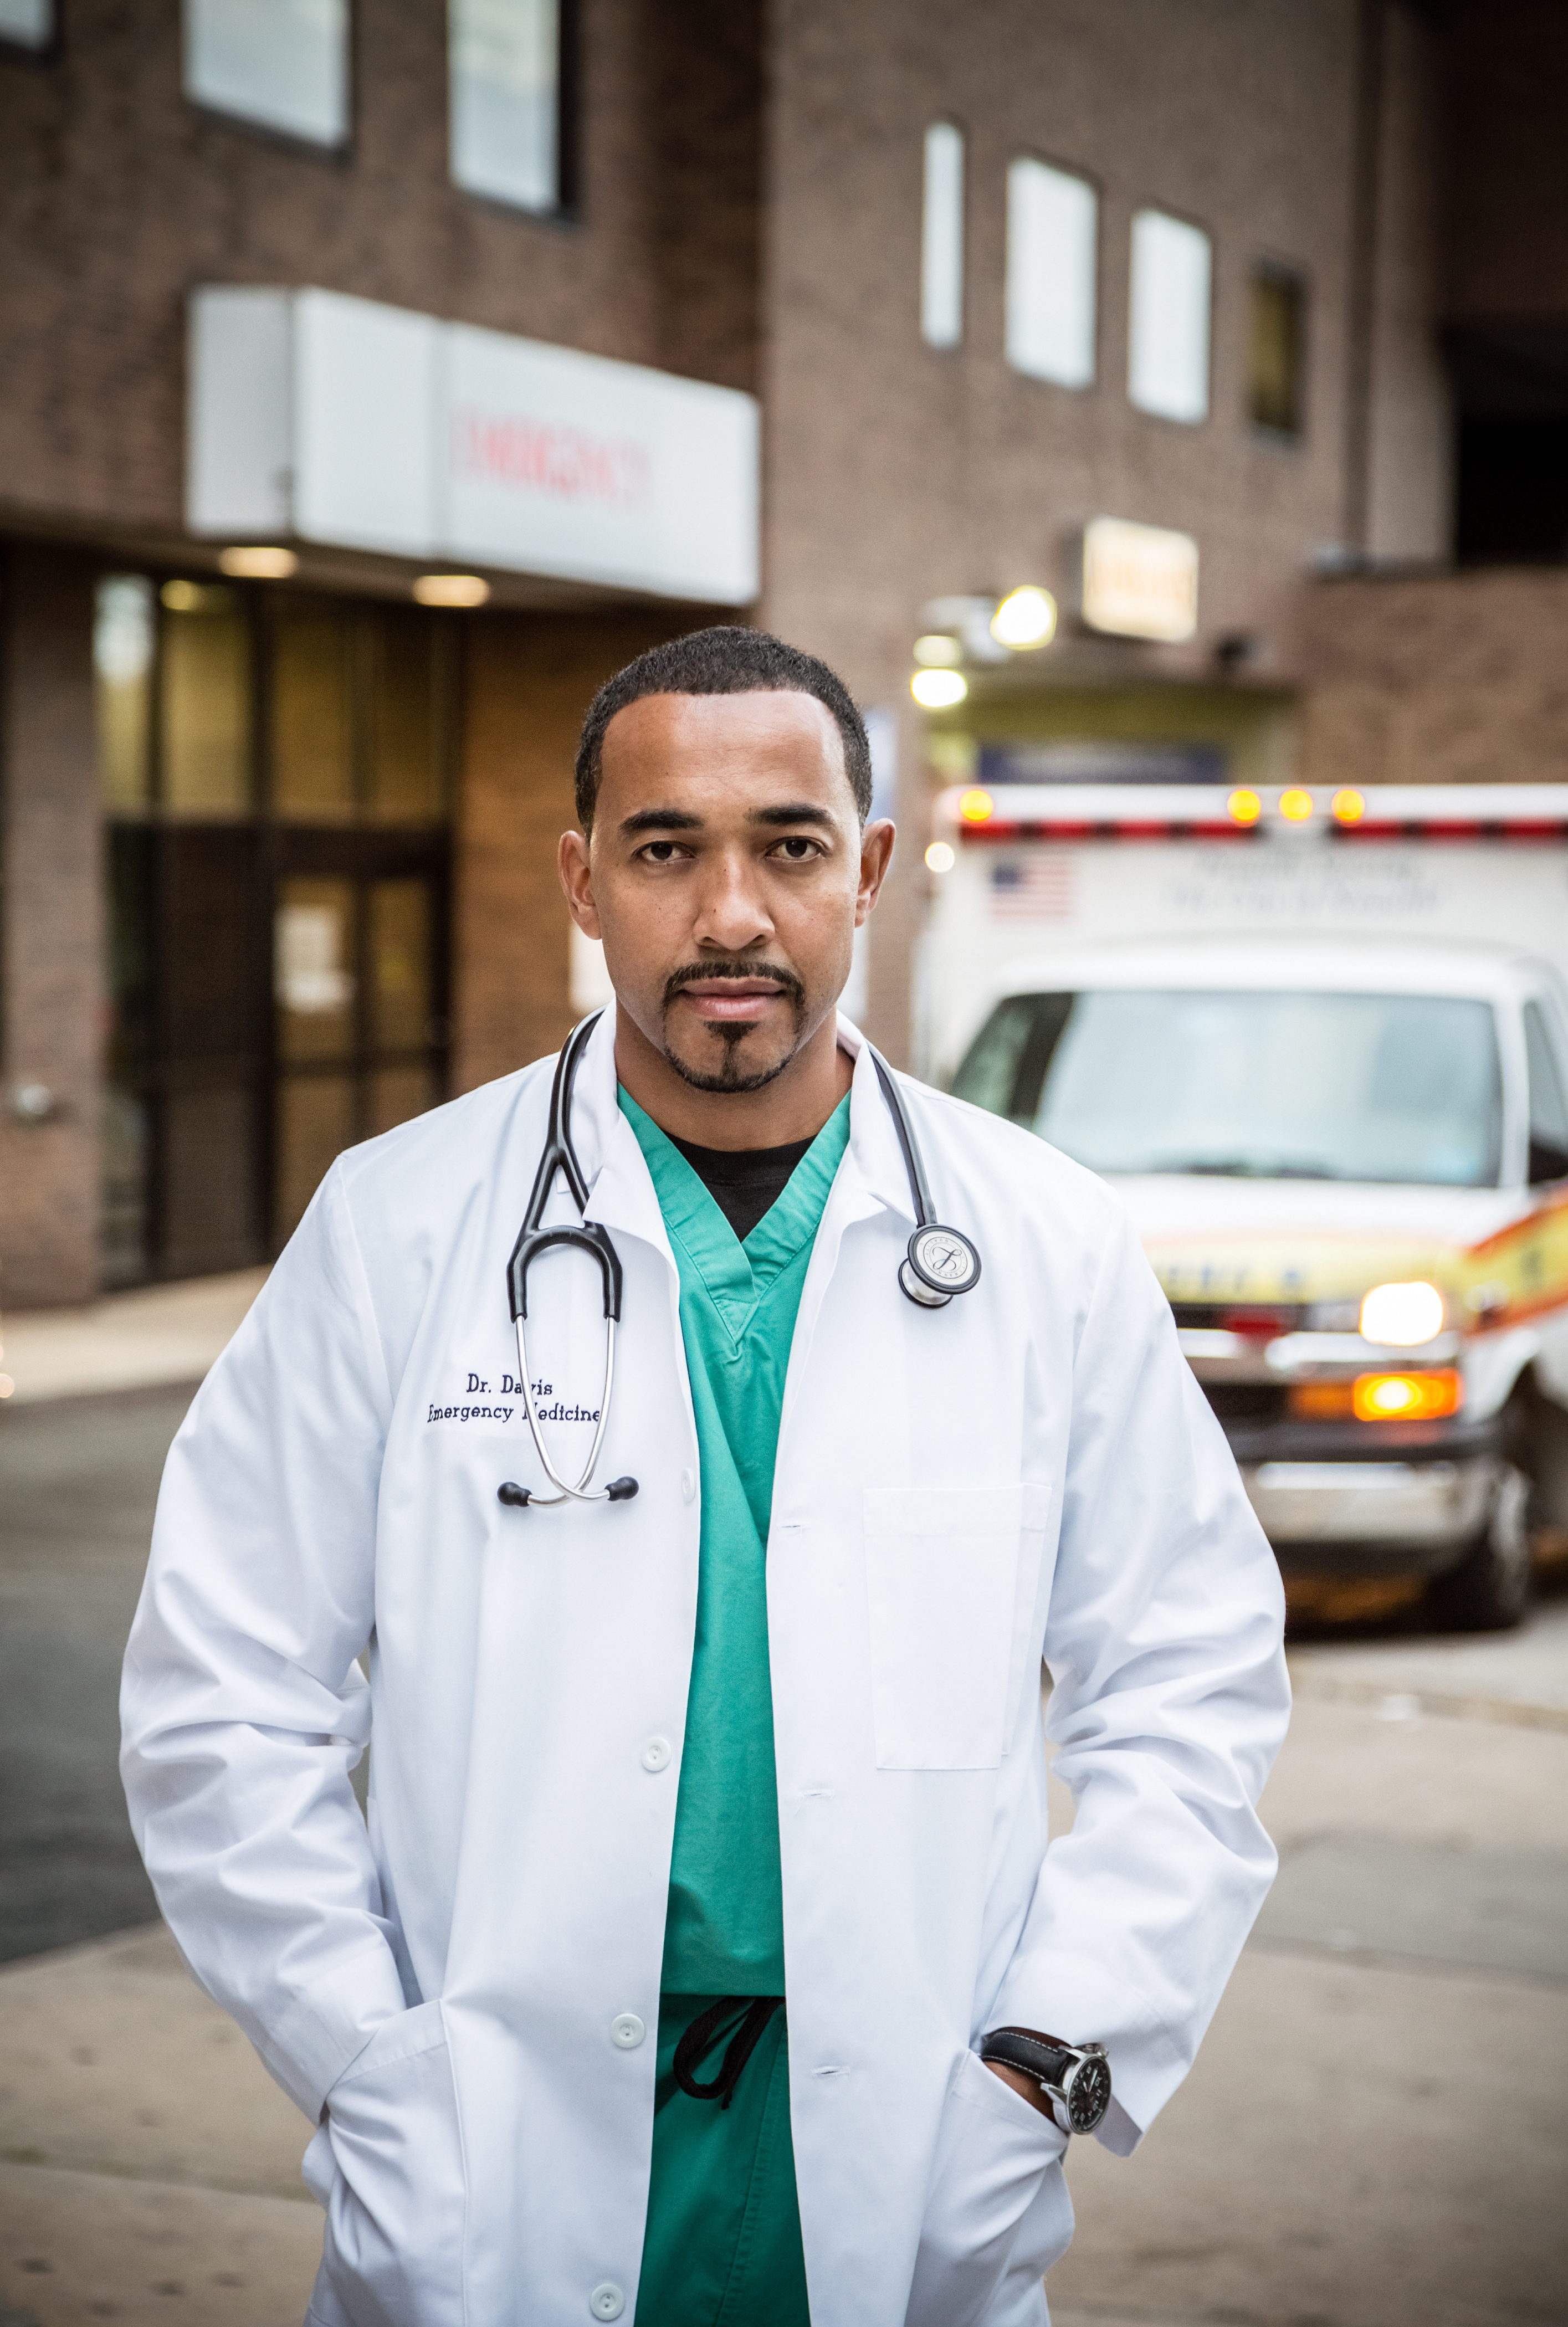 healing brick city a newark doctor returns home ncpr news sampson davis was born and raised in newark n j he is an emergency medicine physician and a founder two childhood friends of the three doctors